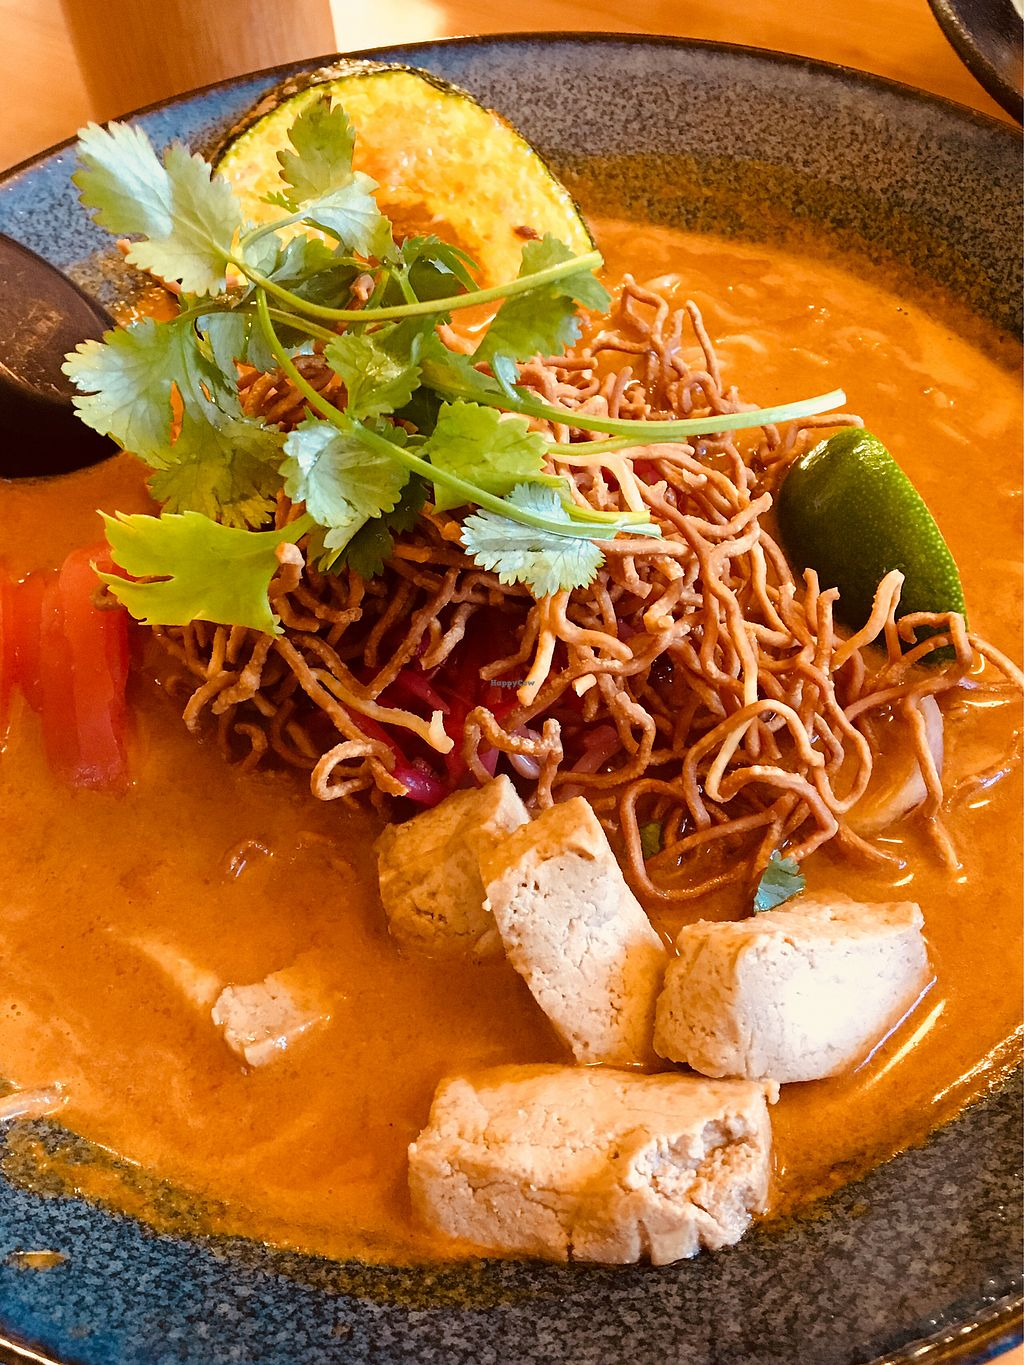 """Photo of It's Time Noodle House  by <a href=""""/members/profile/Clean%26Green"""">Clean&Green</a> <br/>Coconut Red Curry Ramen - Vegan option  <br/> April 18, 2018  - <a href='/contact/abuse/image/79153/387477'>Report</a>"""